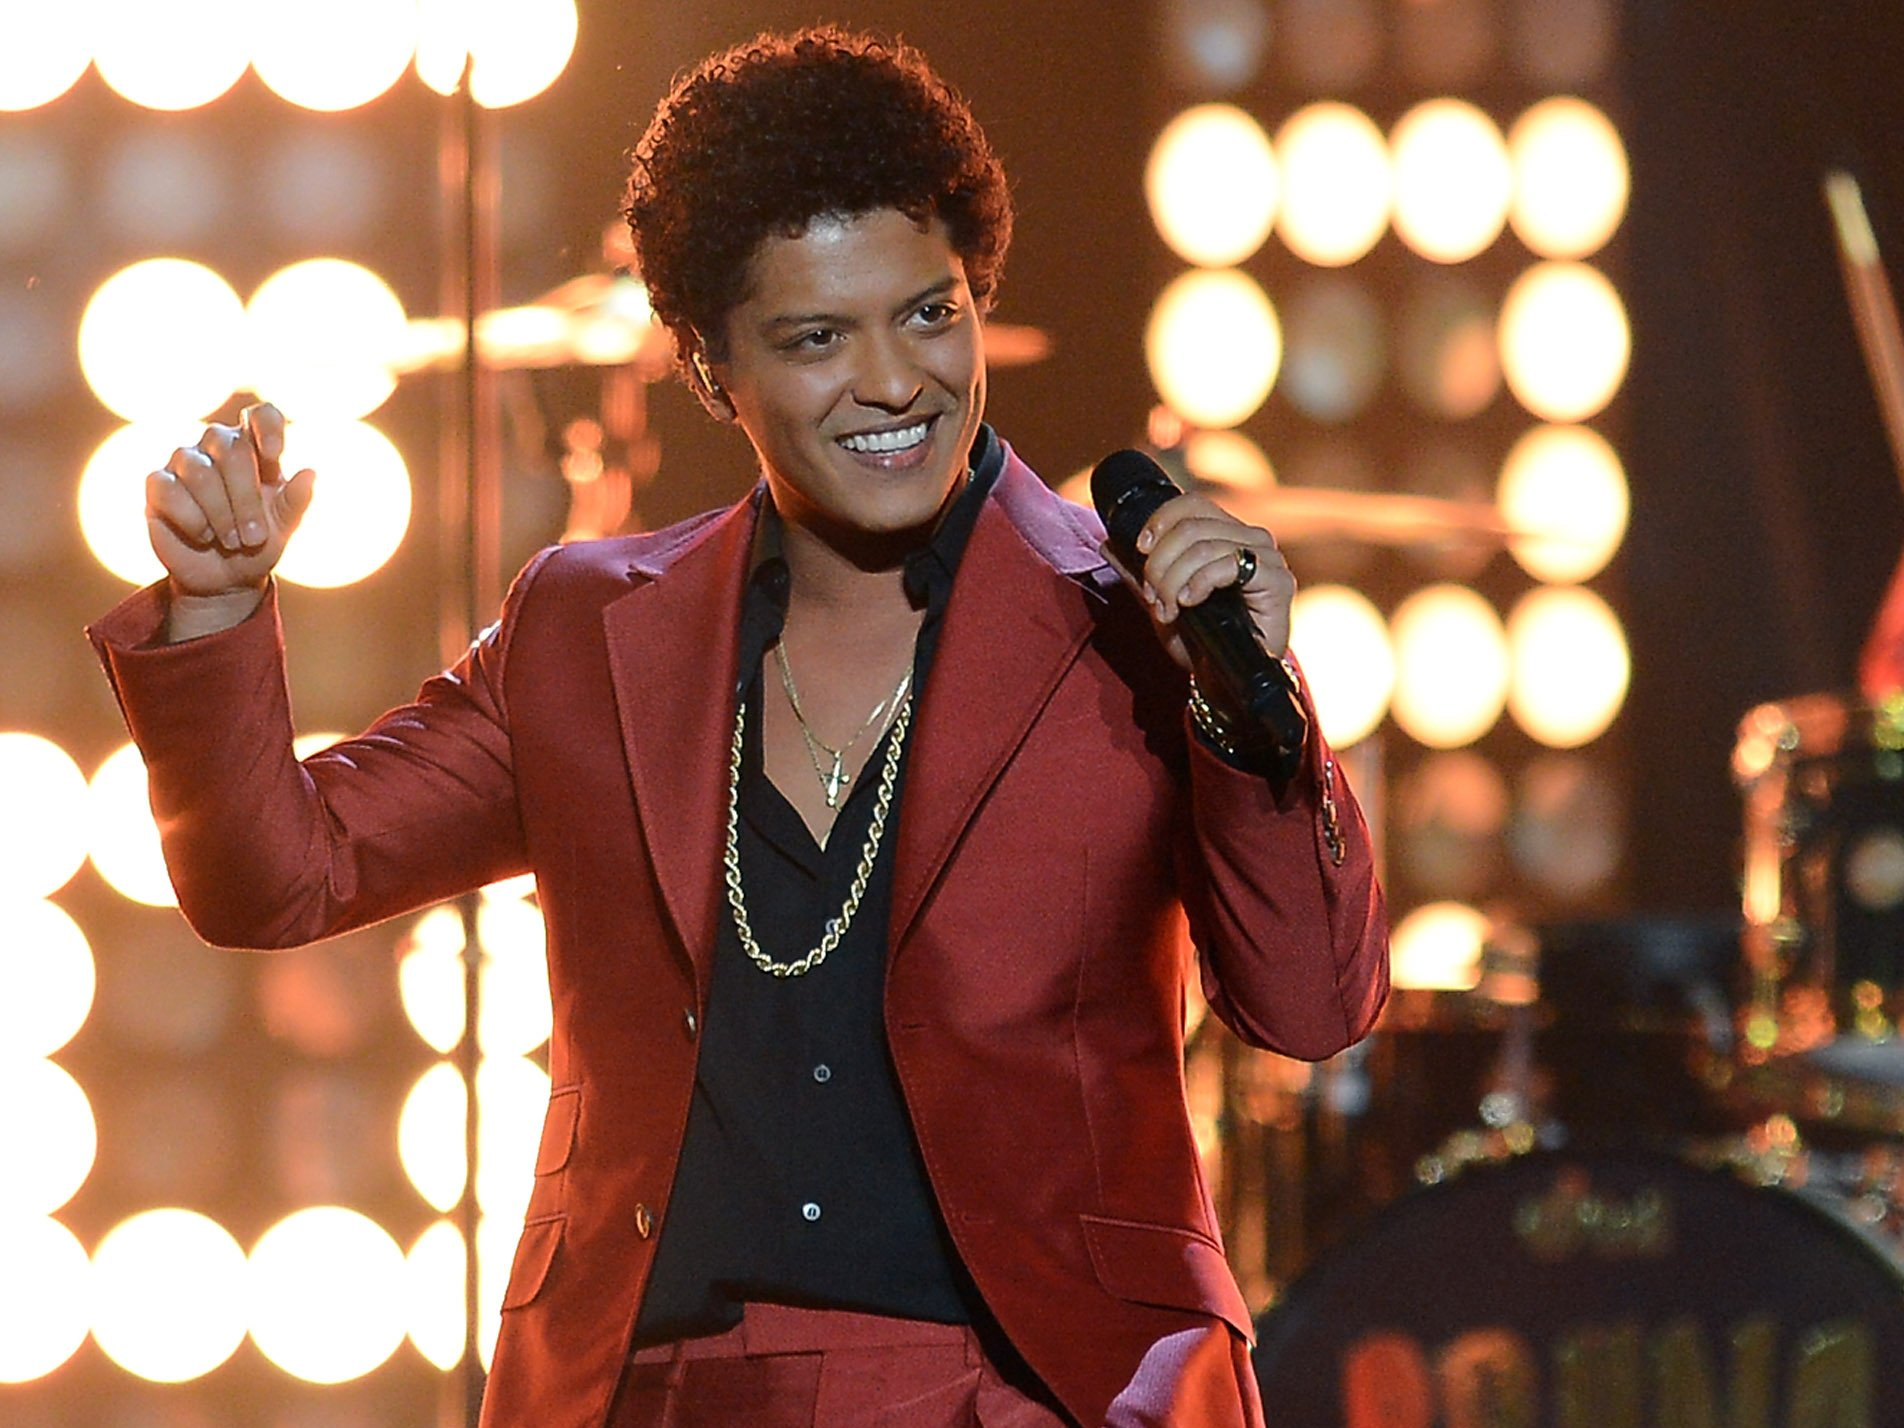 Bruno Mars Wins Big At The 2018 Grammy Awards [See Full List Of Winners]